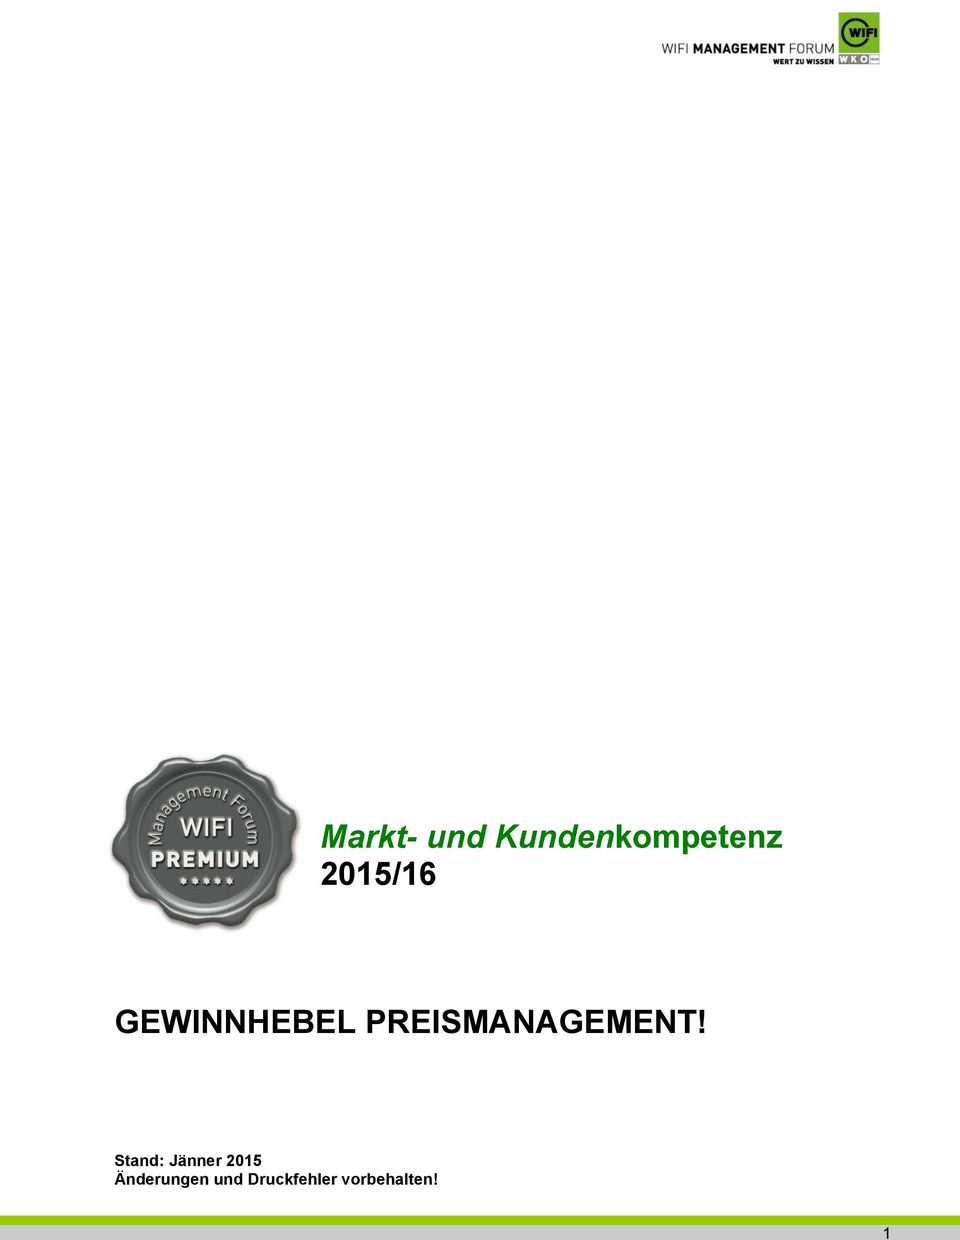 PREISMANAGEMENT!